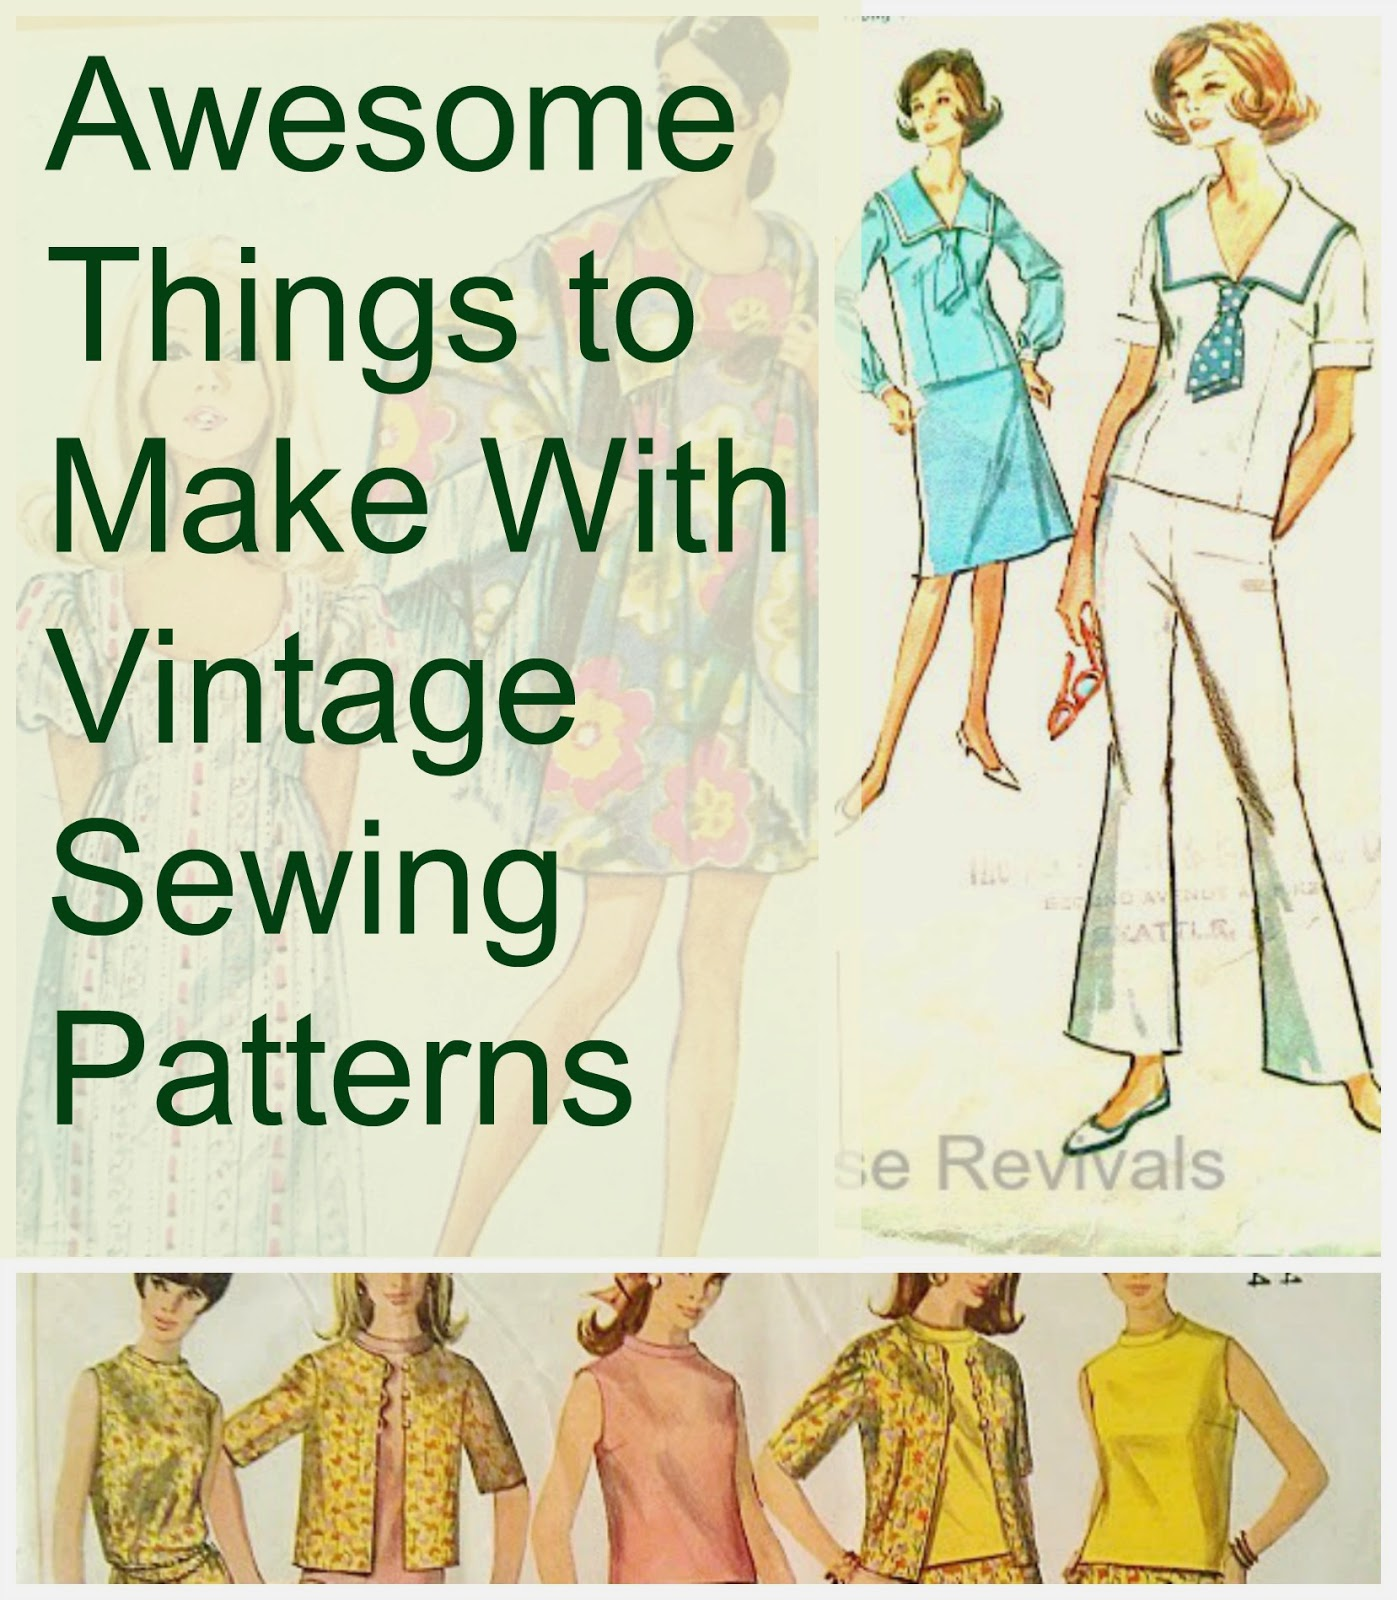 Cool things to make with vintage sewing patterns